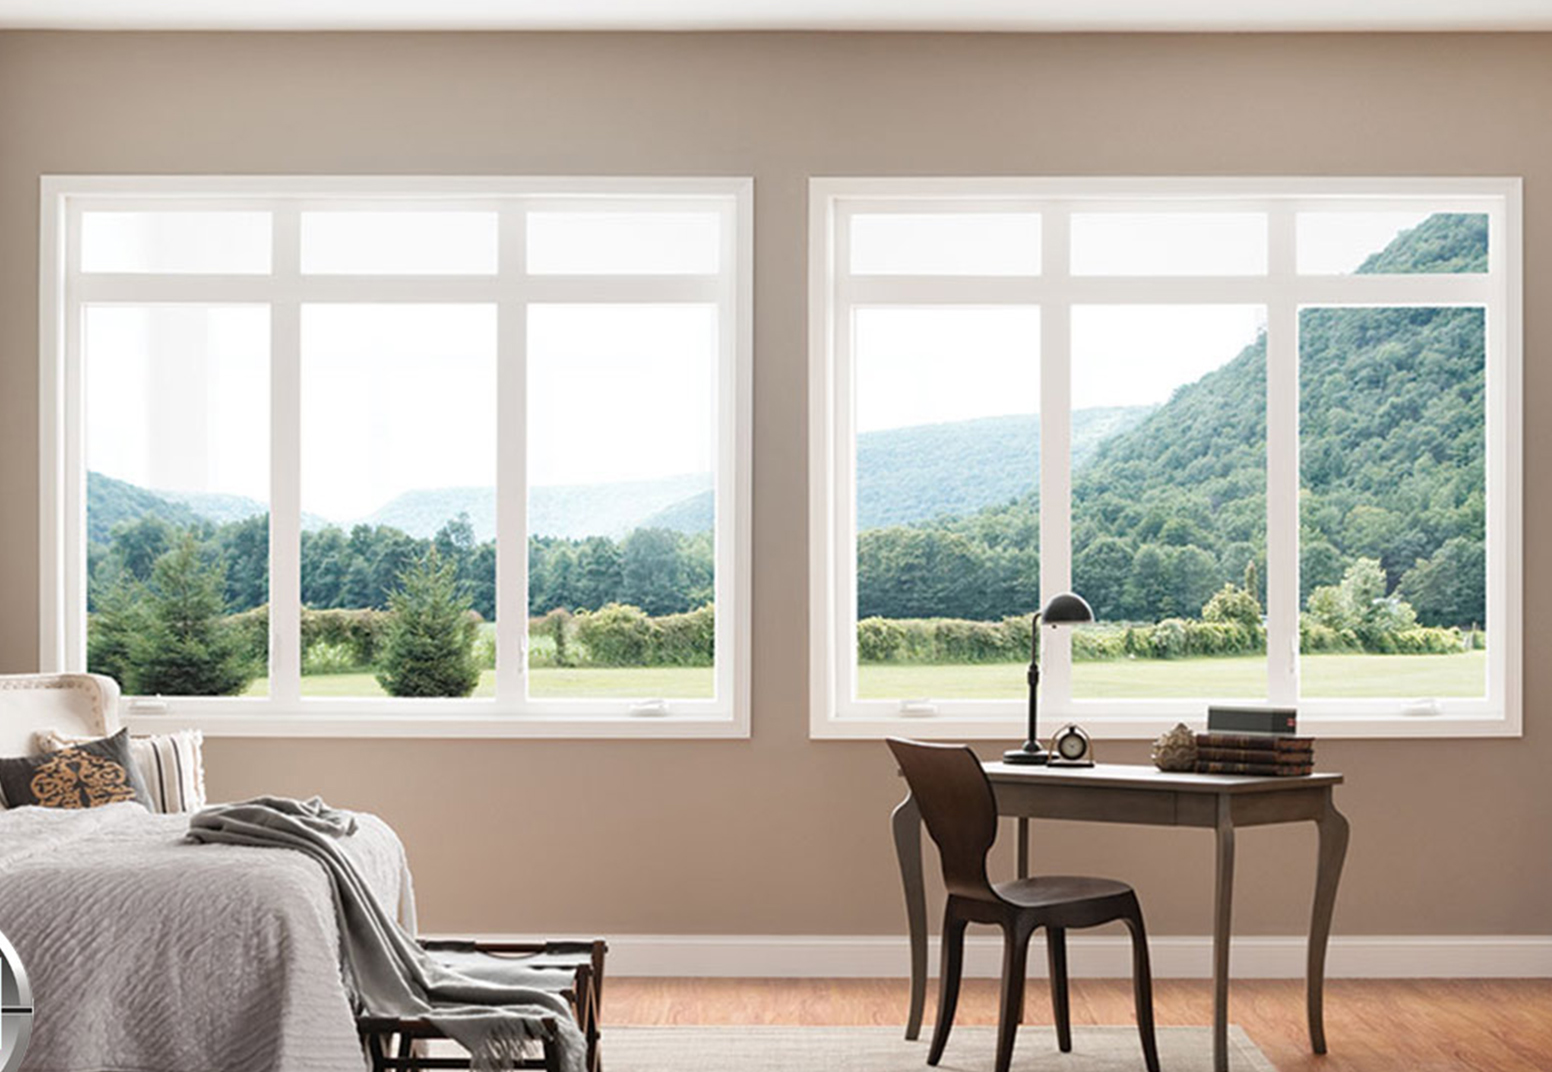 Vinyl Vs. Aluminum Windows: Which One is Best?